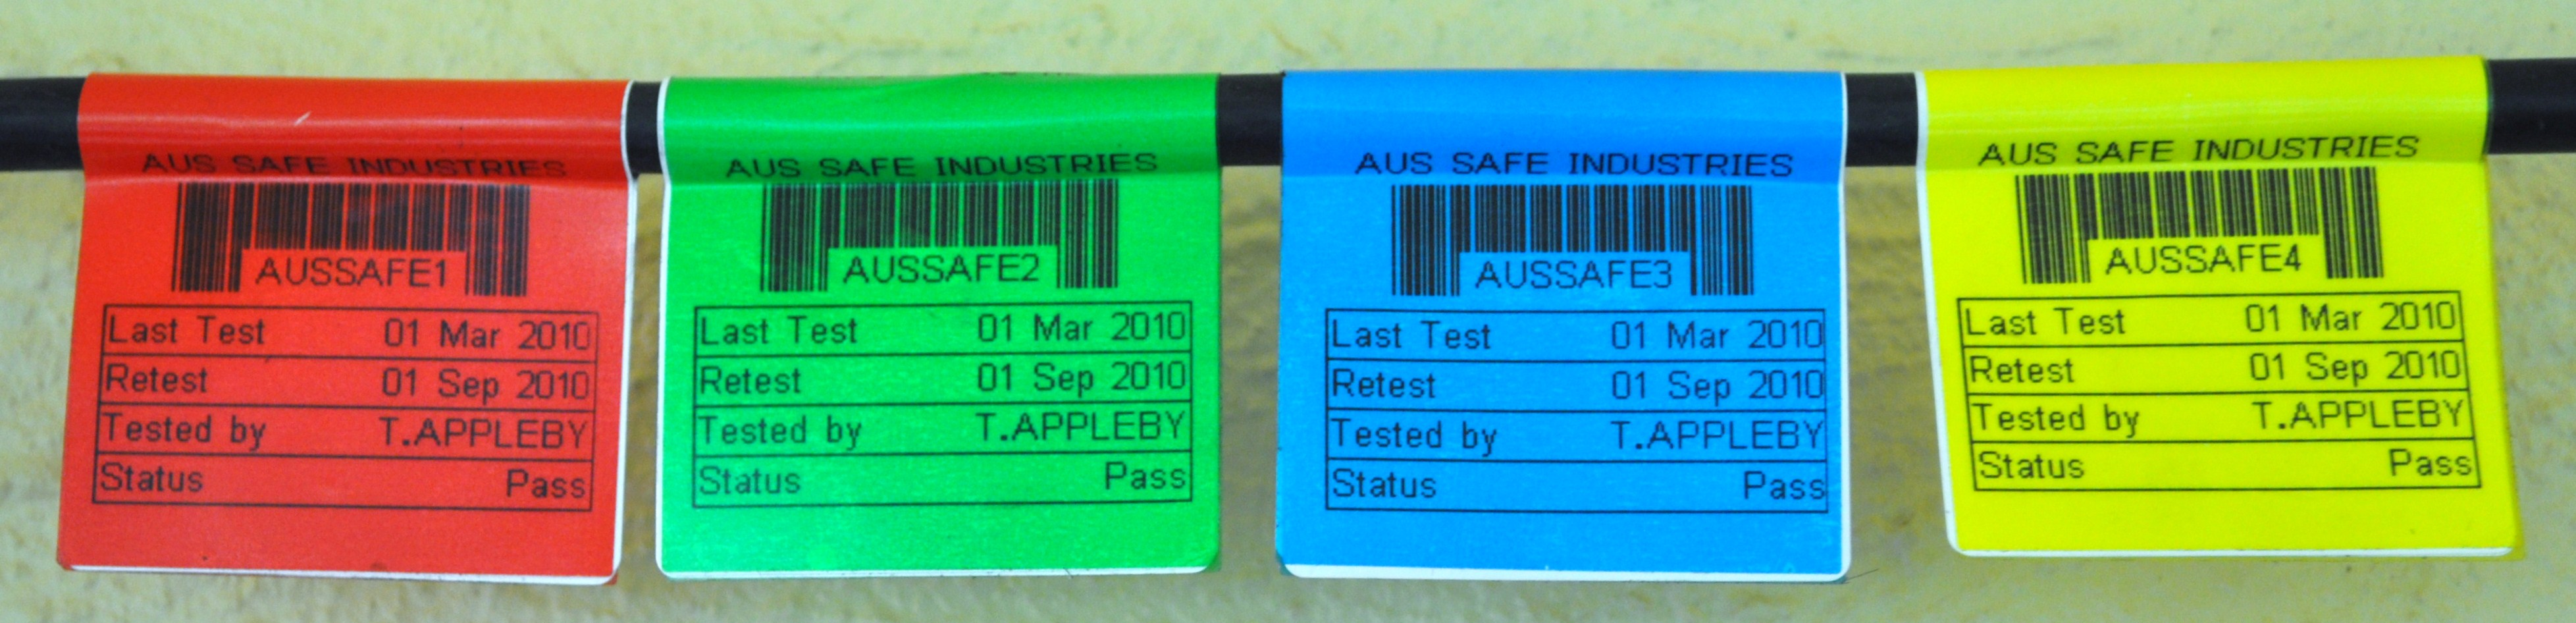 Australian Safety Industries coloured tags